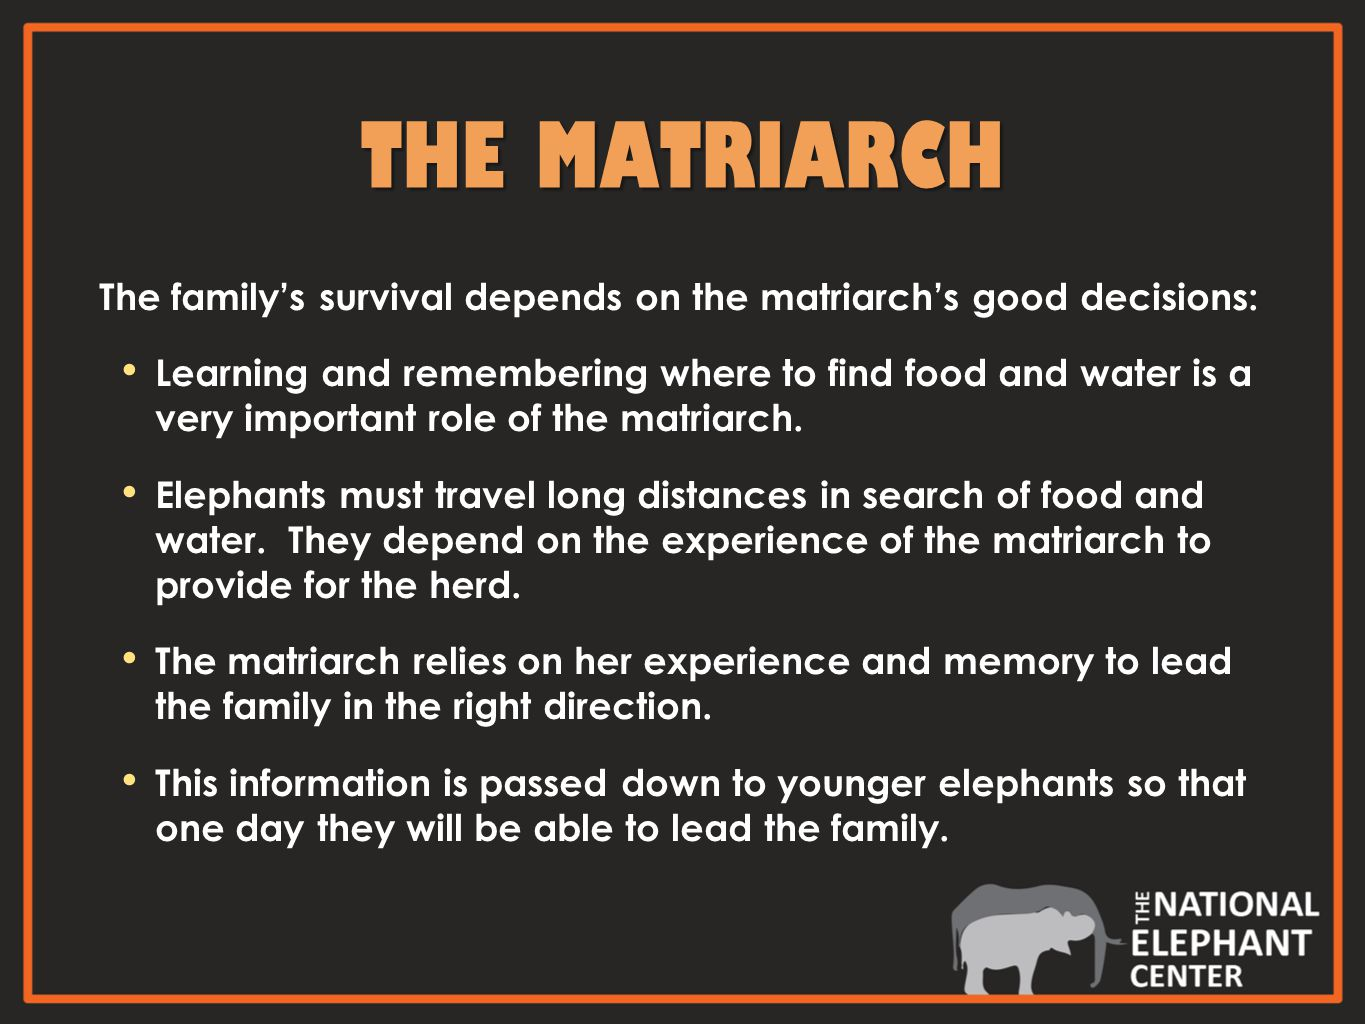 THE MATRIARCH The family's survival depends on the matriarch's good decisions: Learning and remembering where to find food and water is a very important role of the matriarch.